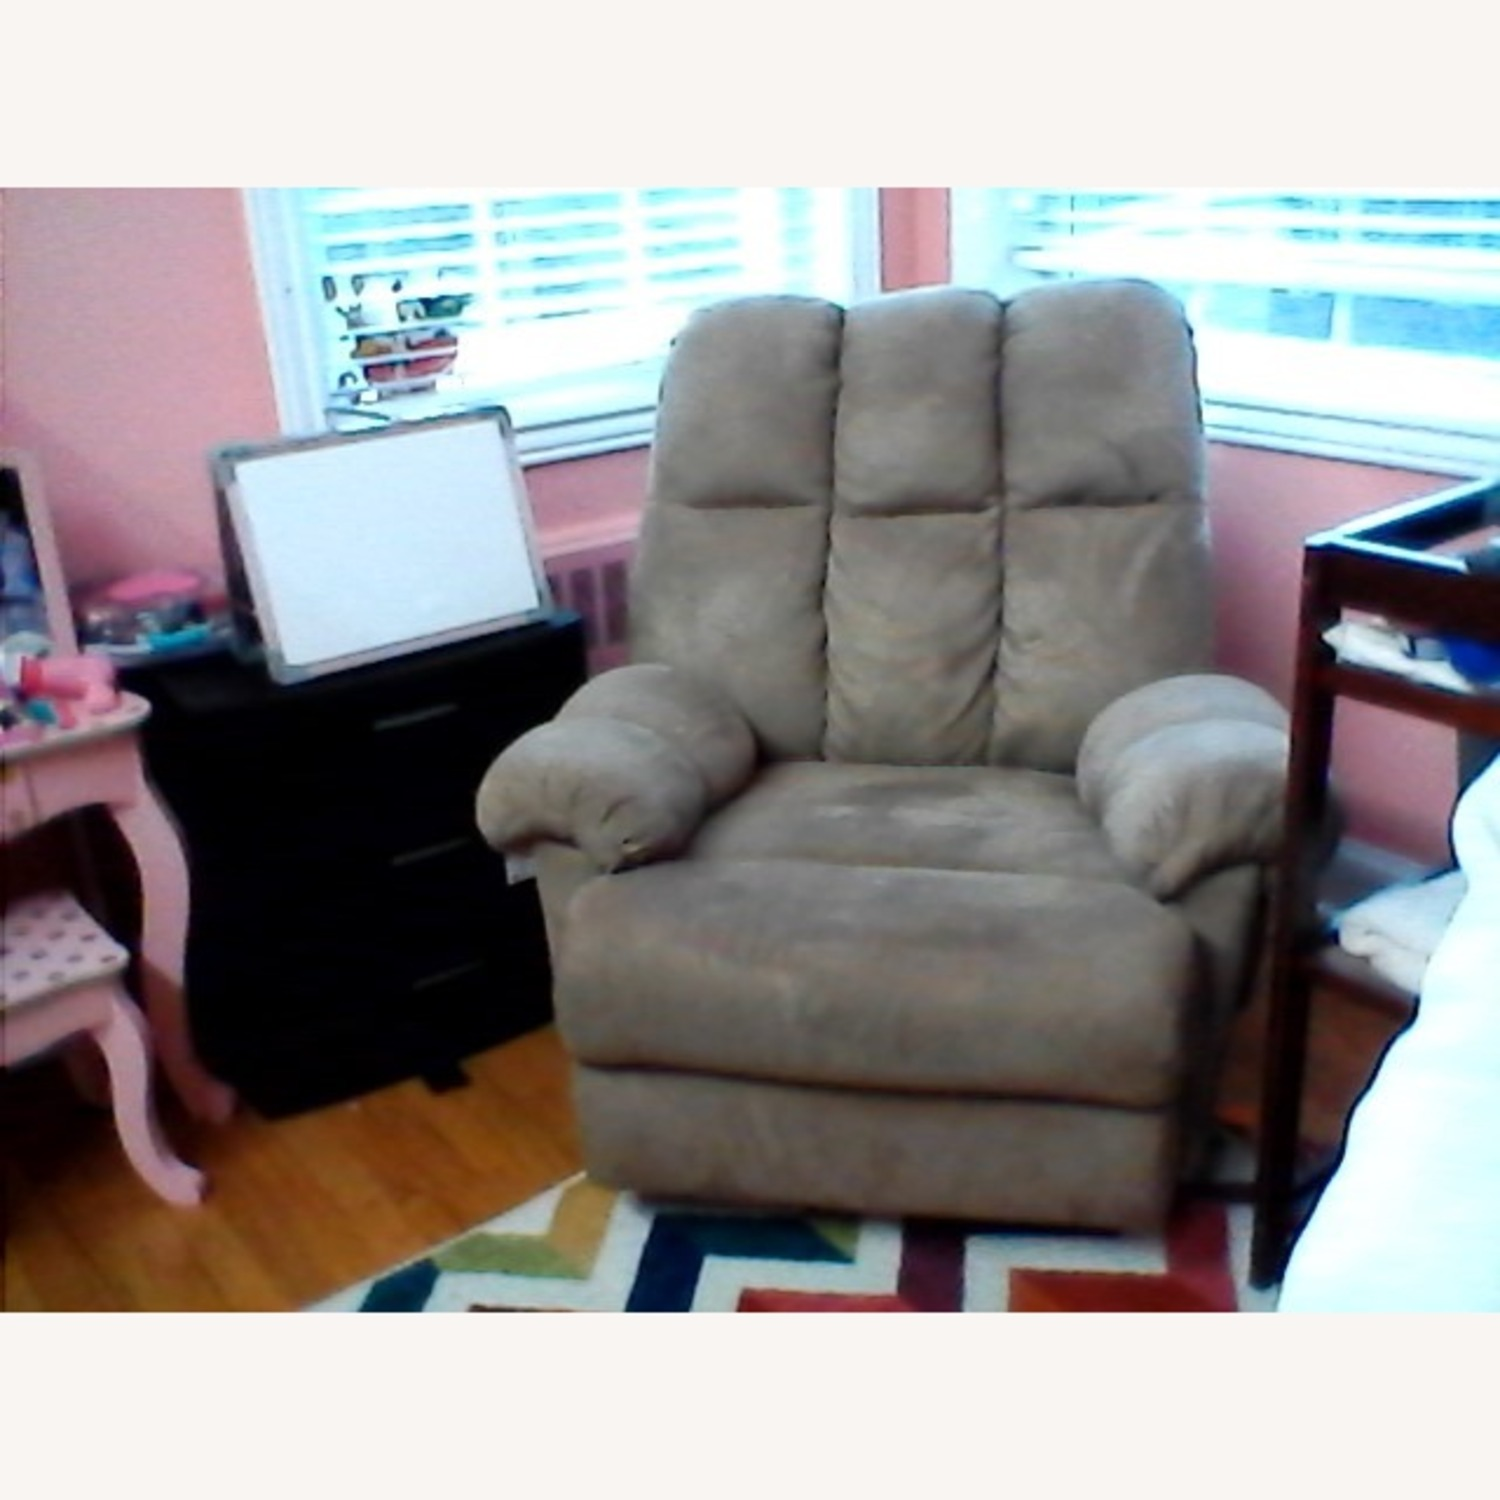 Rocking Chair Nursing and Recliner 2 in 1 - image-4